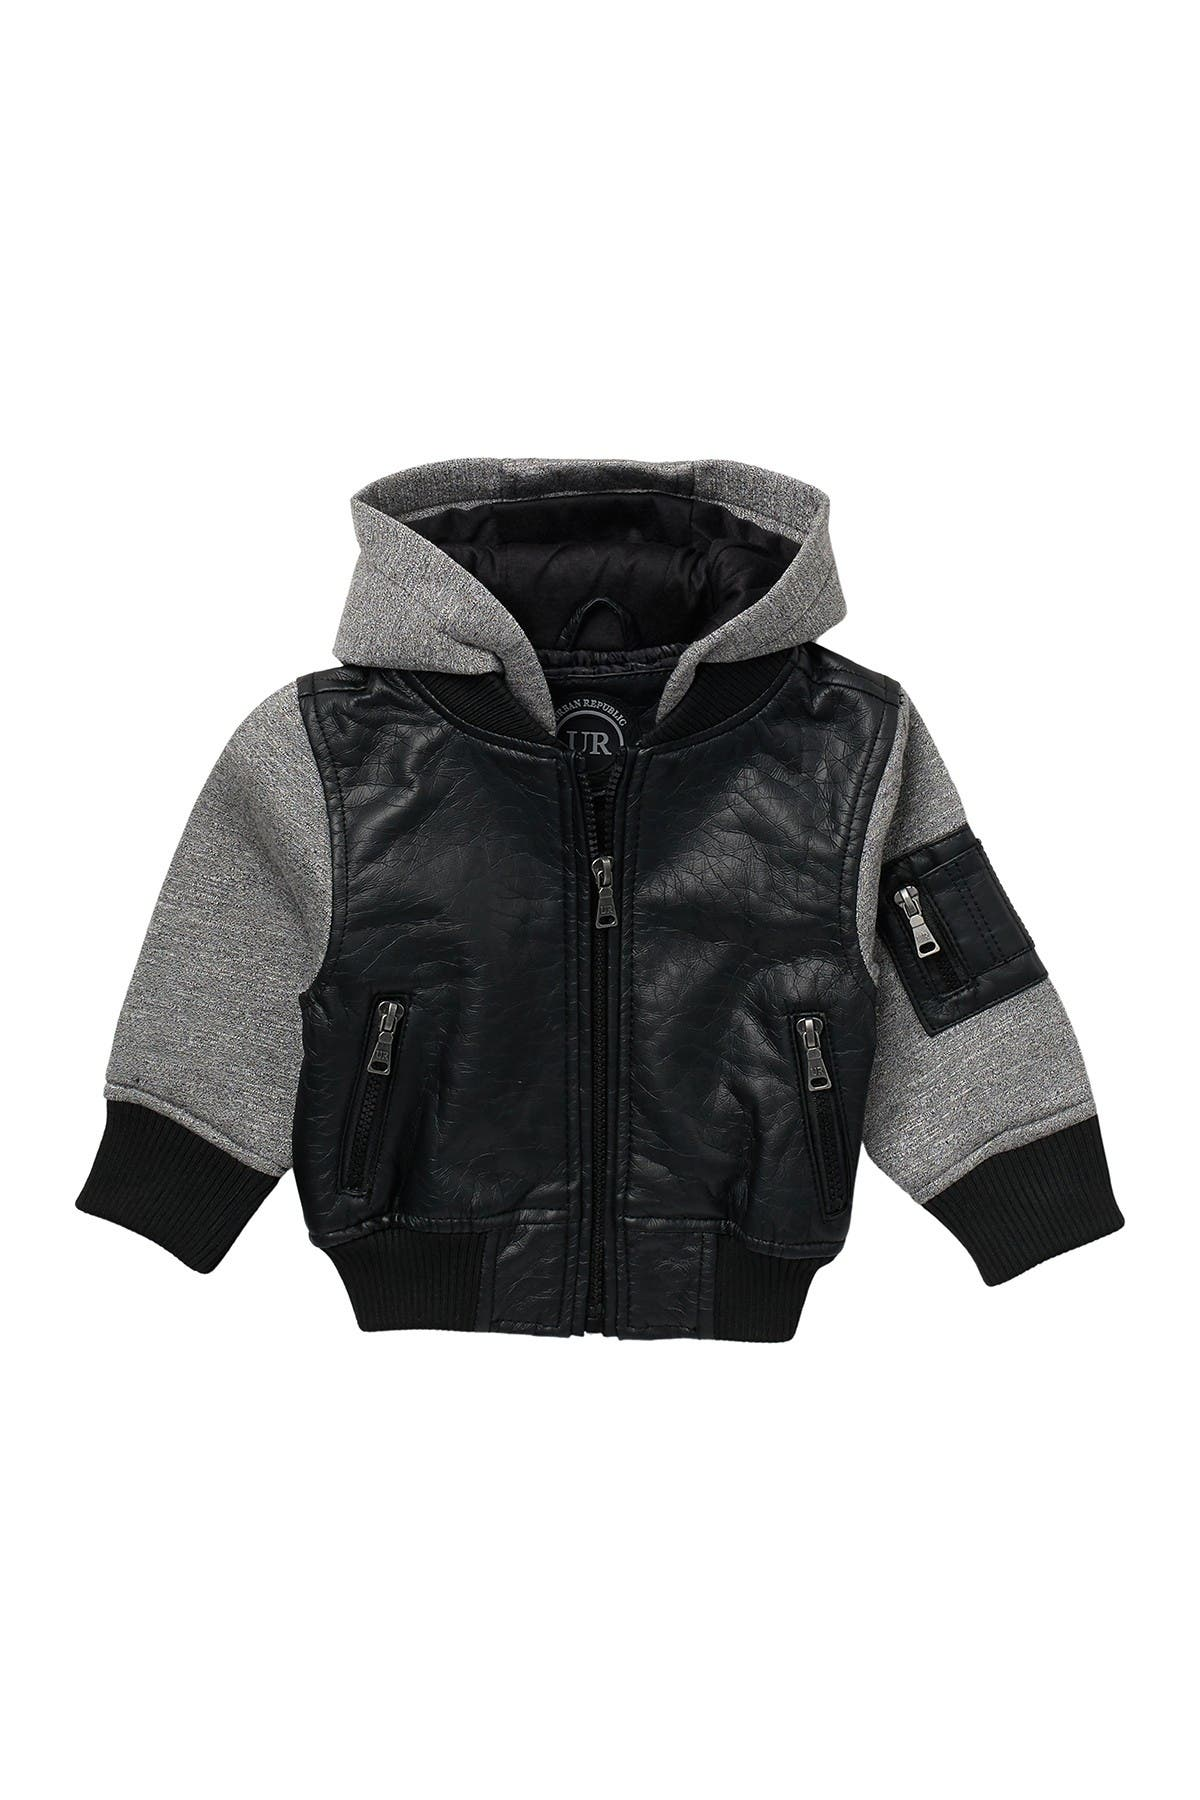 Image of Urban Republic Faux Leather Bomber